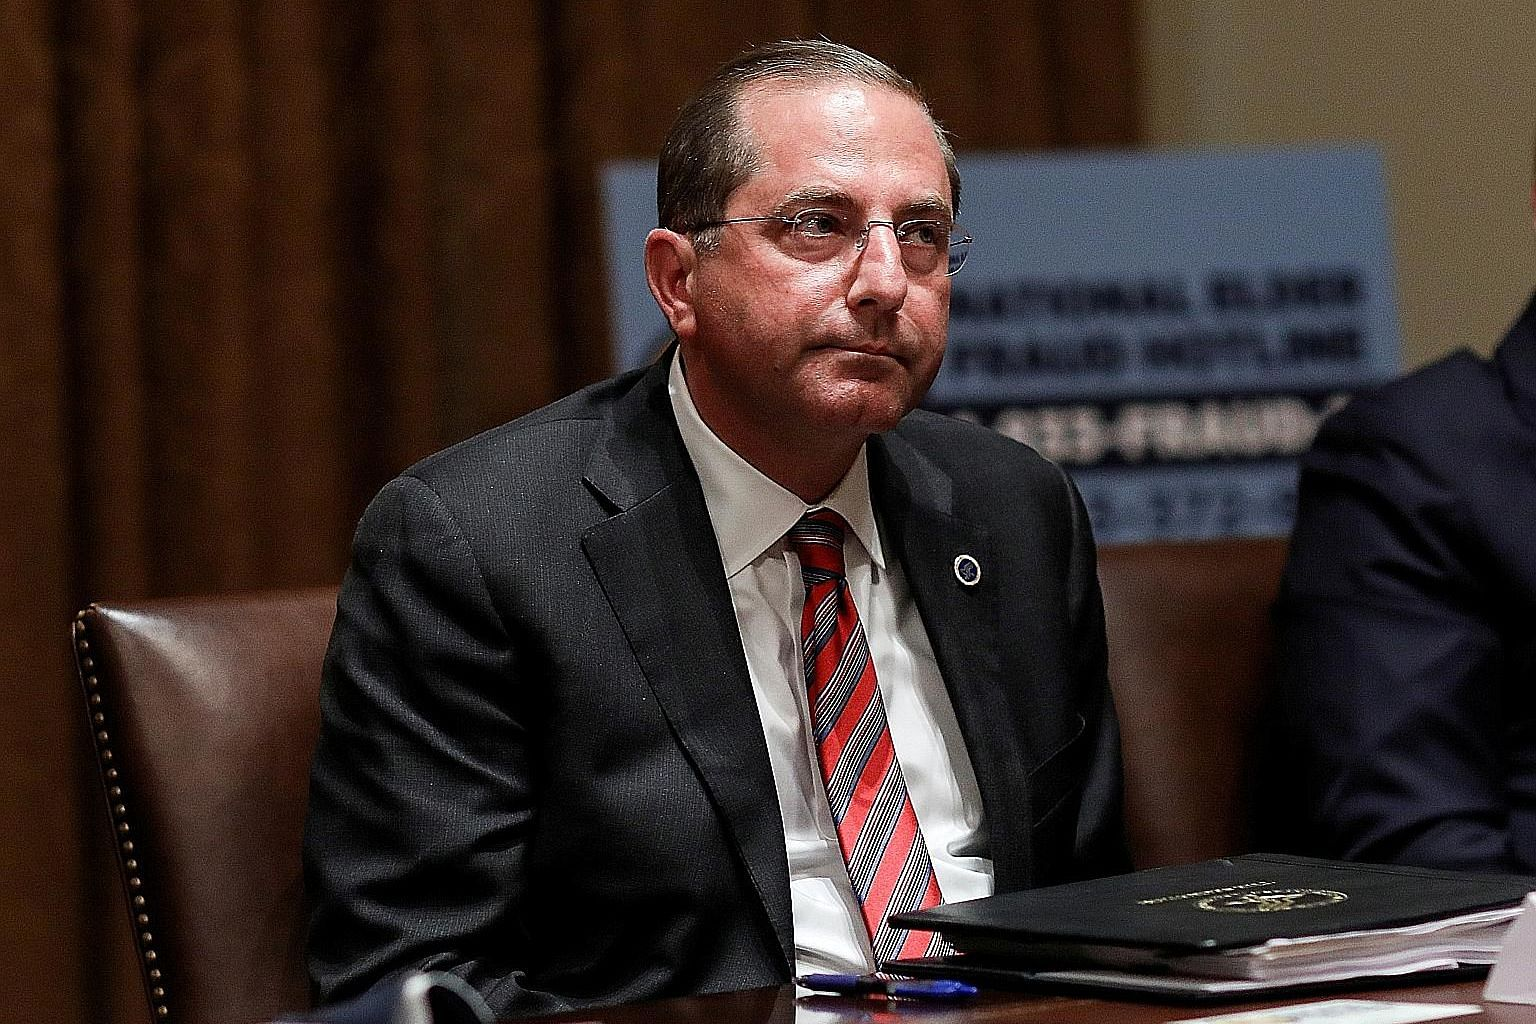 Health and Human Services Secretary Alex Azar's (left) planned visit to Taiwan is not inconsistent with previous US policy, says Secretary of State Mike Pompeo.